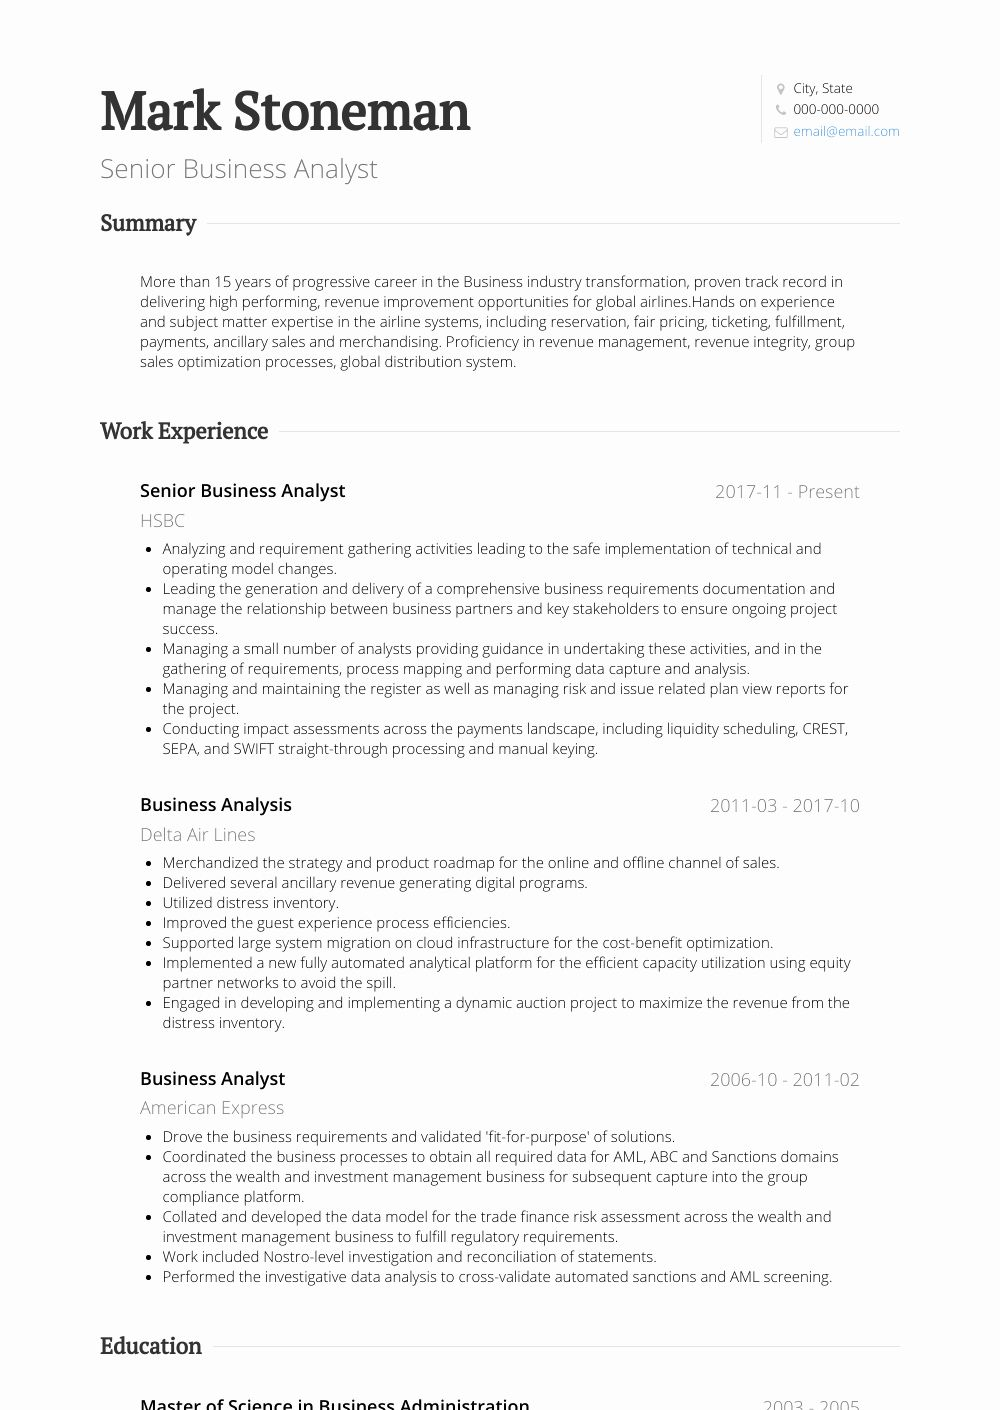 business analyst resume example inspirational senior simple for job education project Resume Senior Business Analyst Resume Example